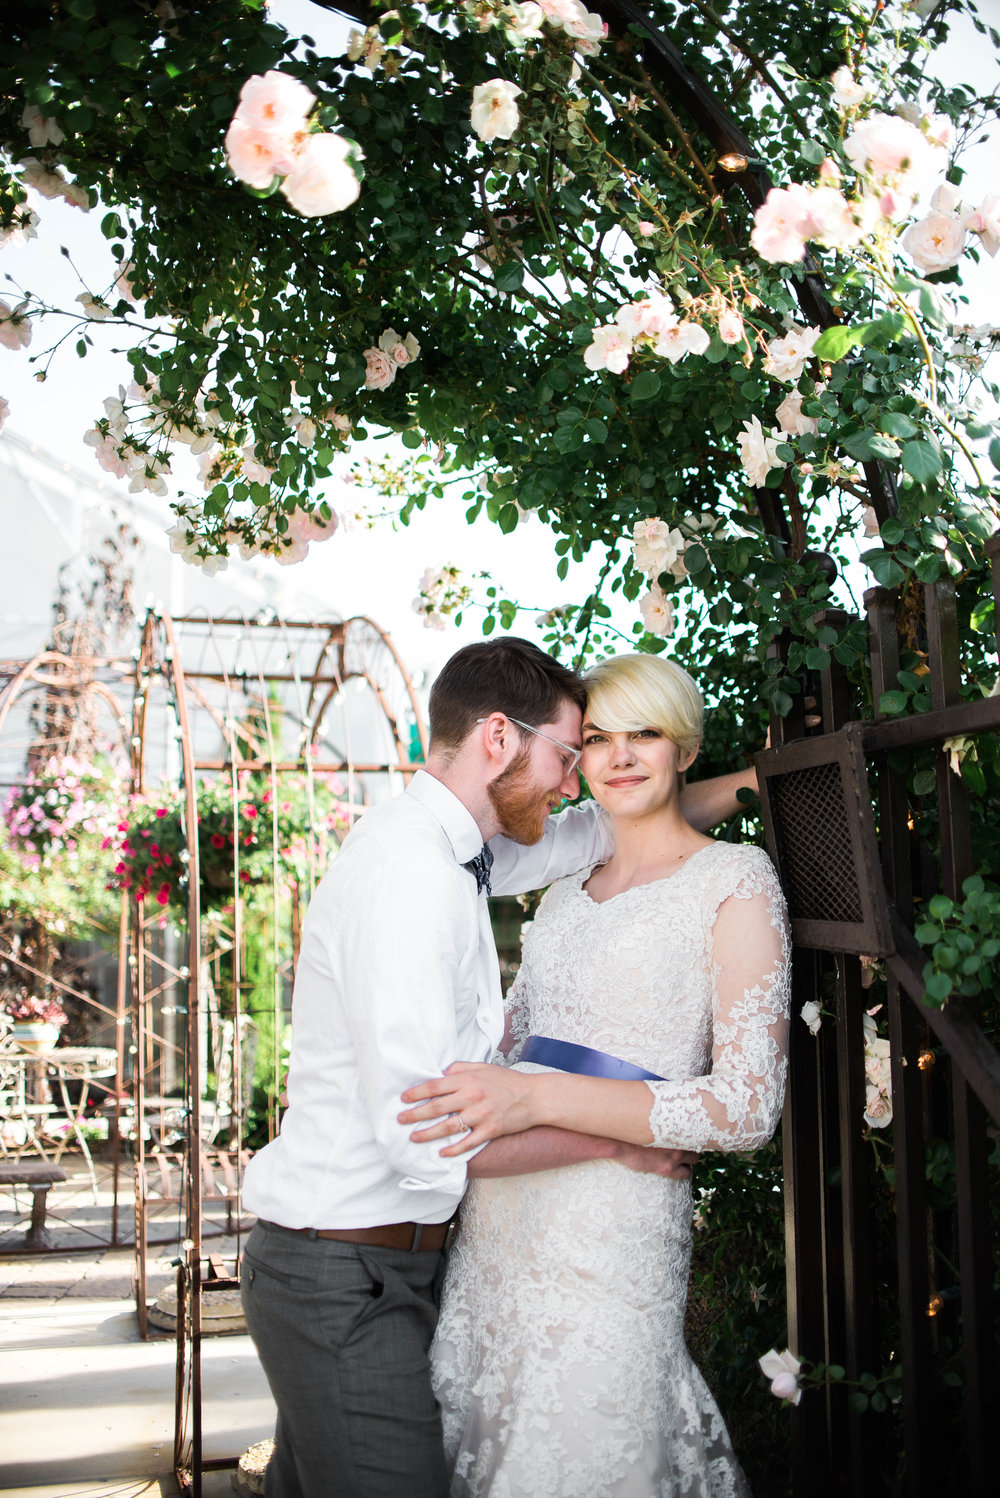 K+M-Wedding-DaySadie_Banks_Photography-920.jpg